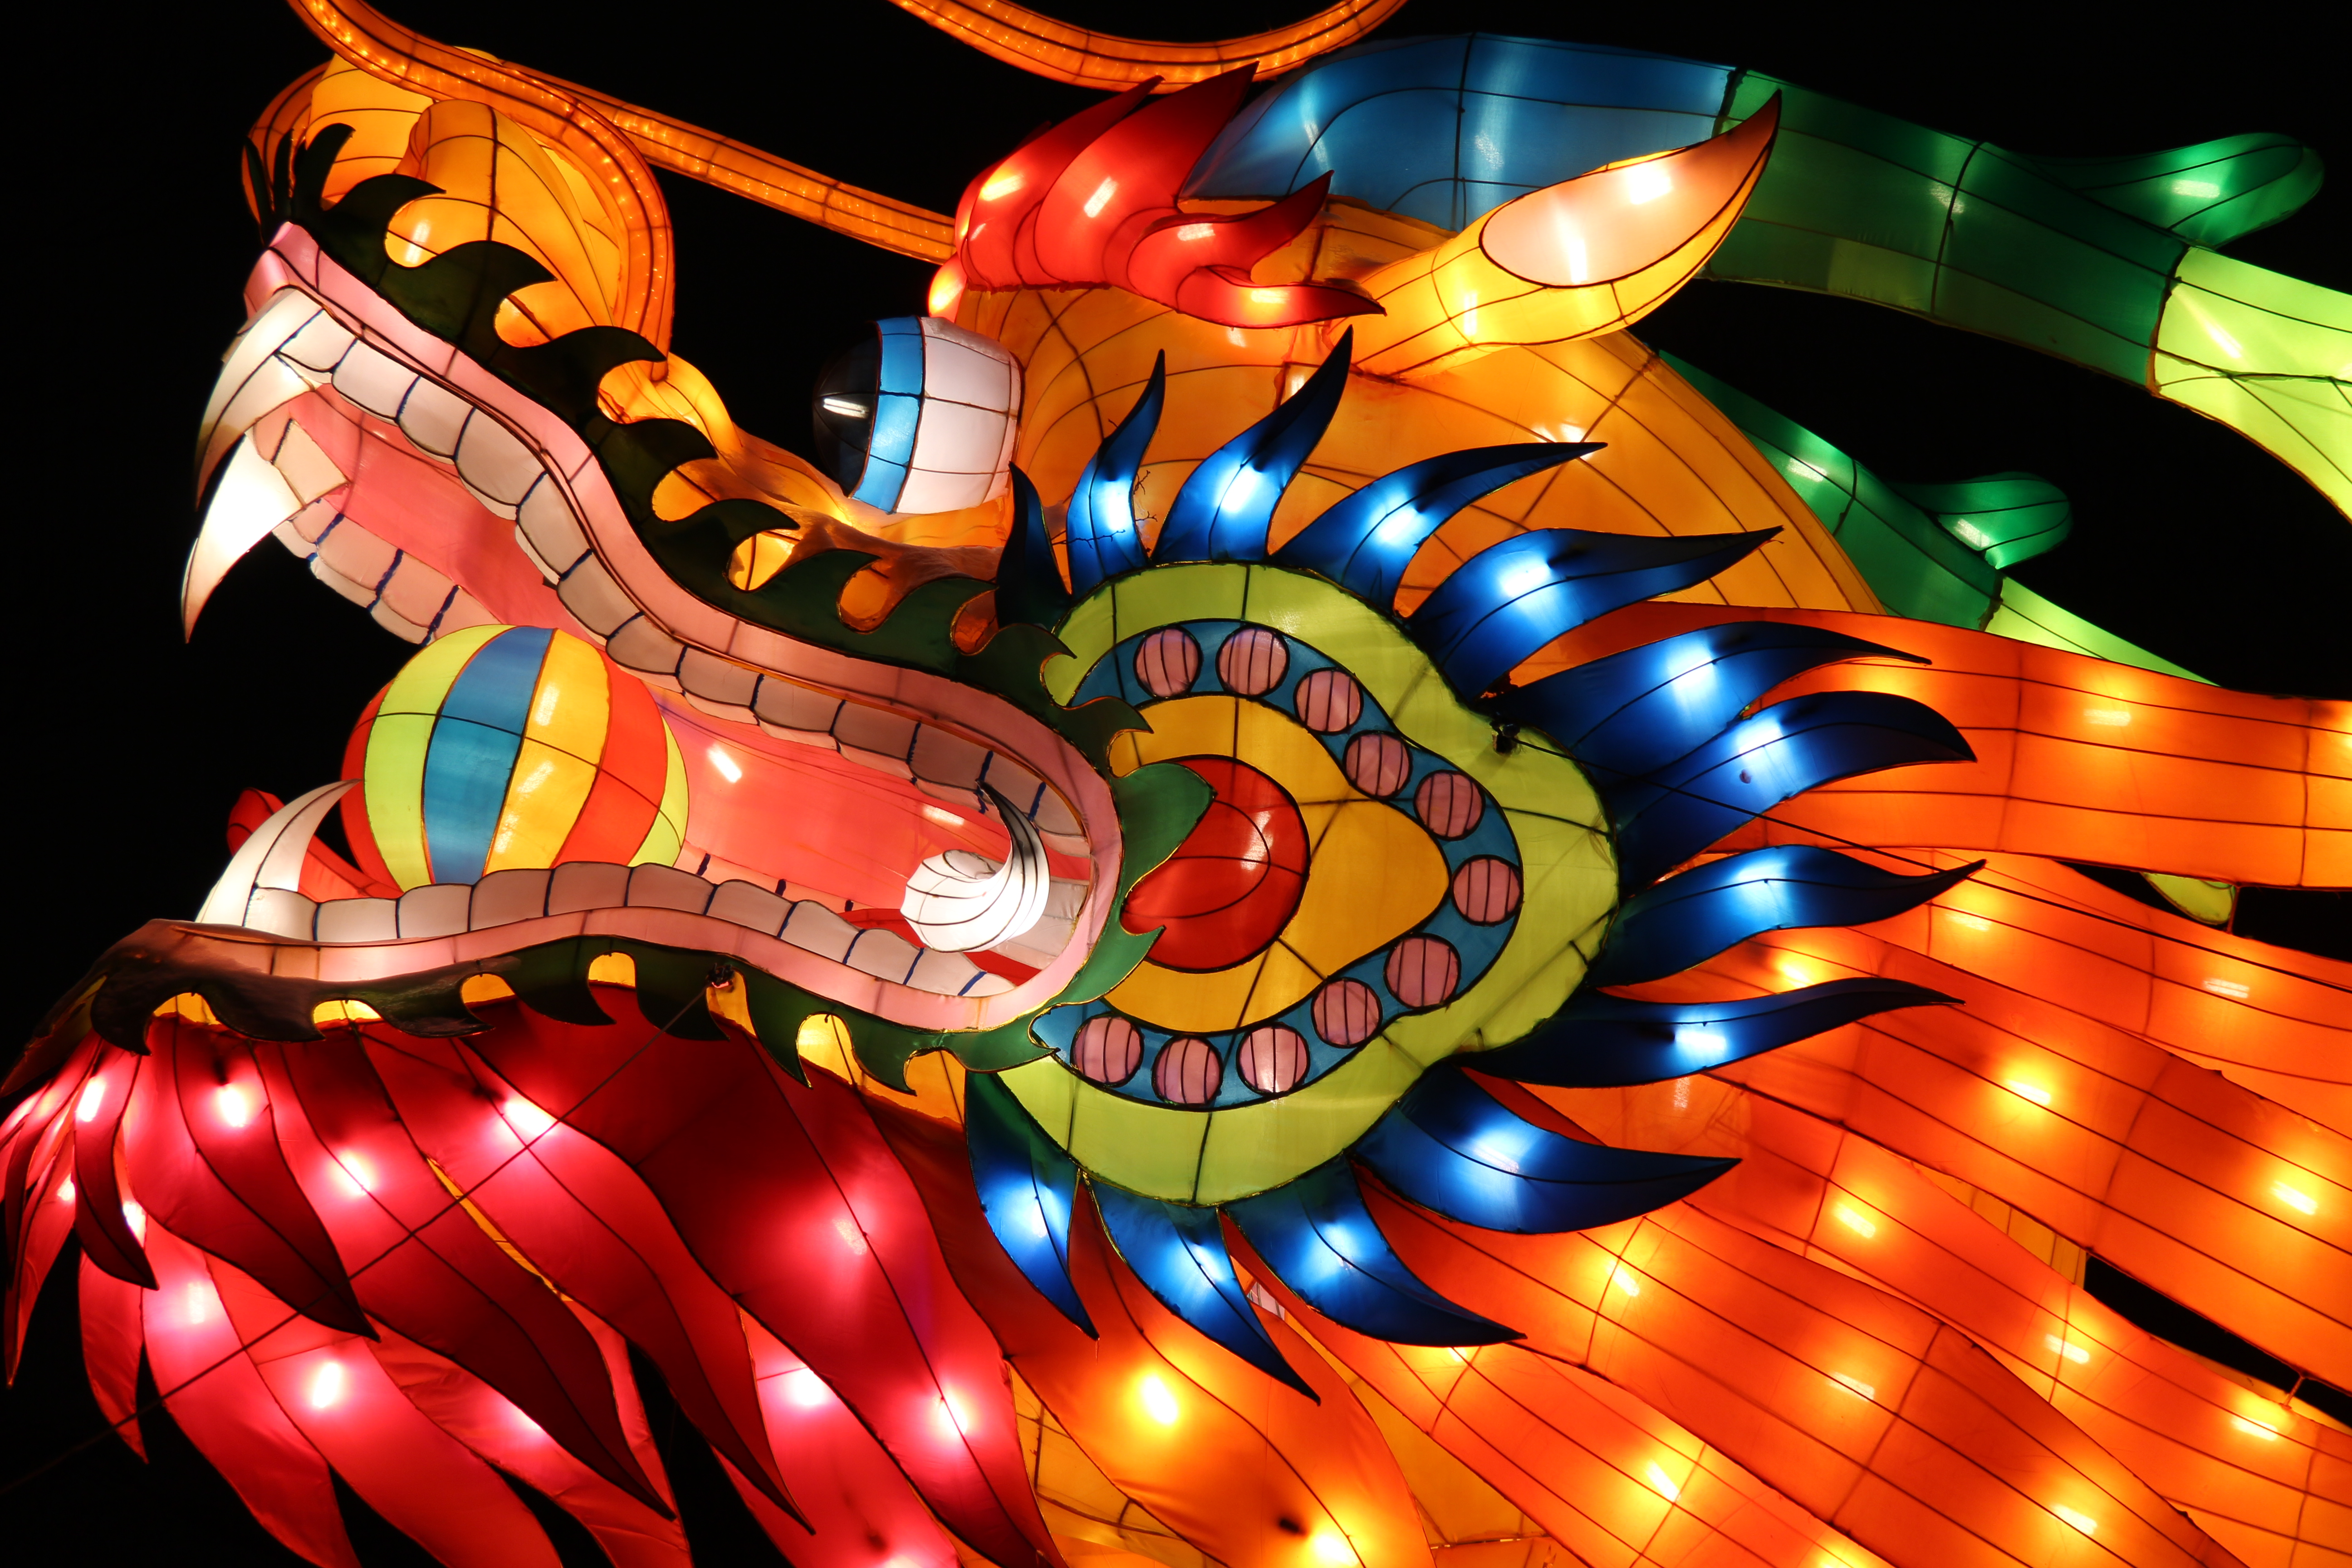 Chinese New Year in the Philippines | Philippines | Asia Society